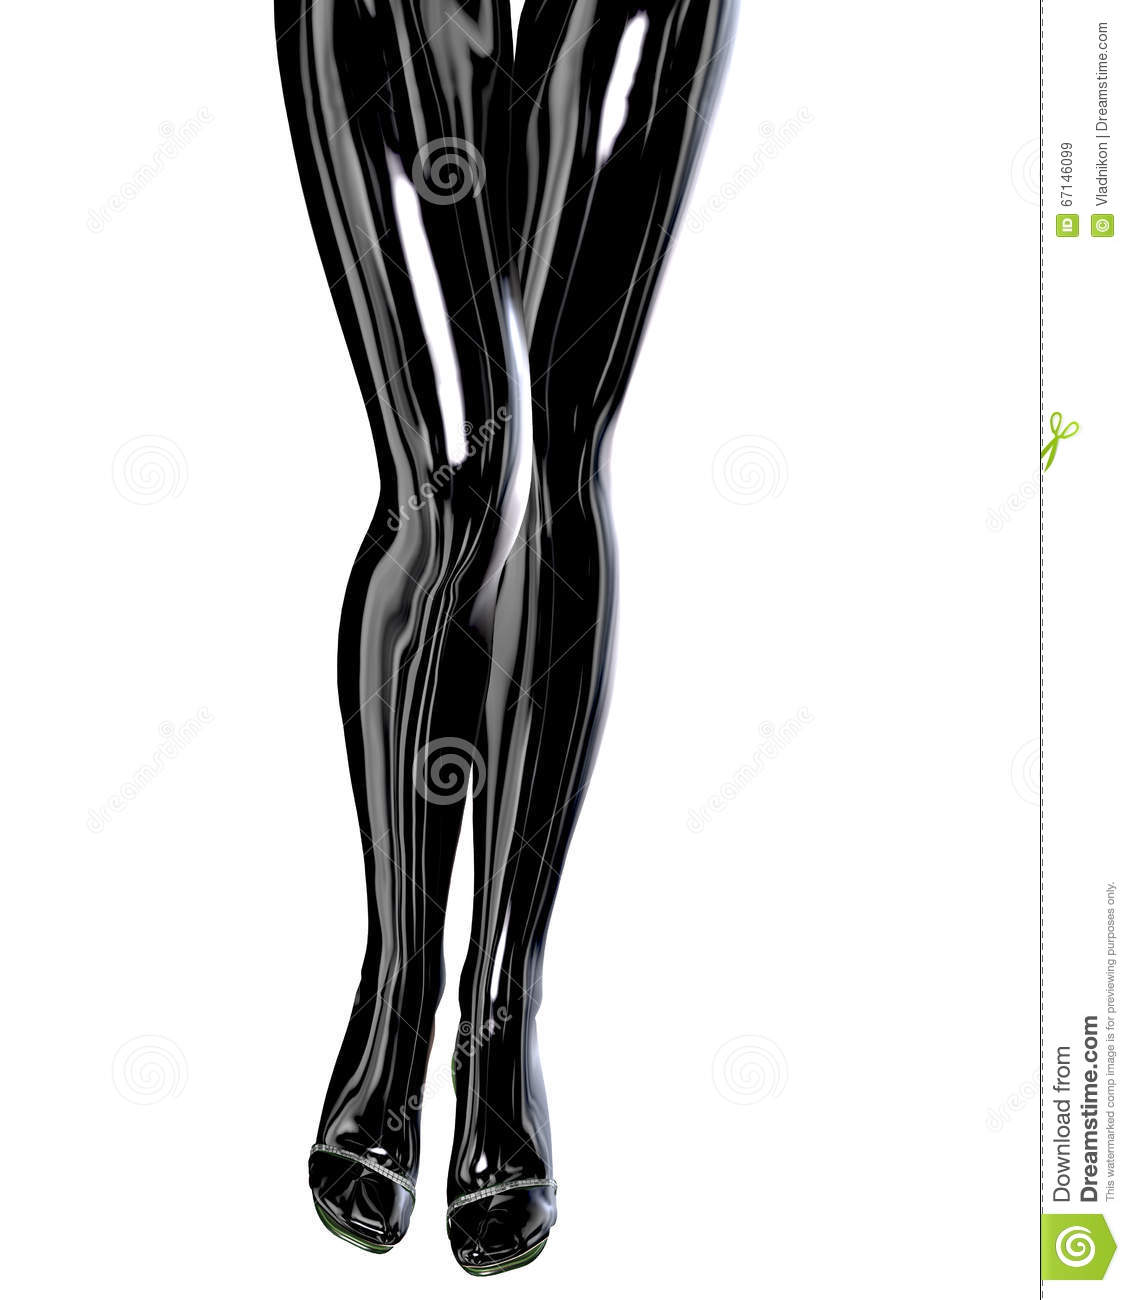 9defd611257 Slim Female Legs In Latex Pantyhose. Stock Illustration ...